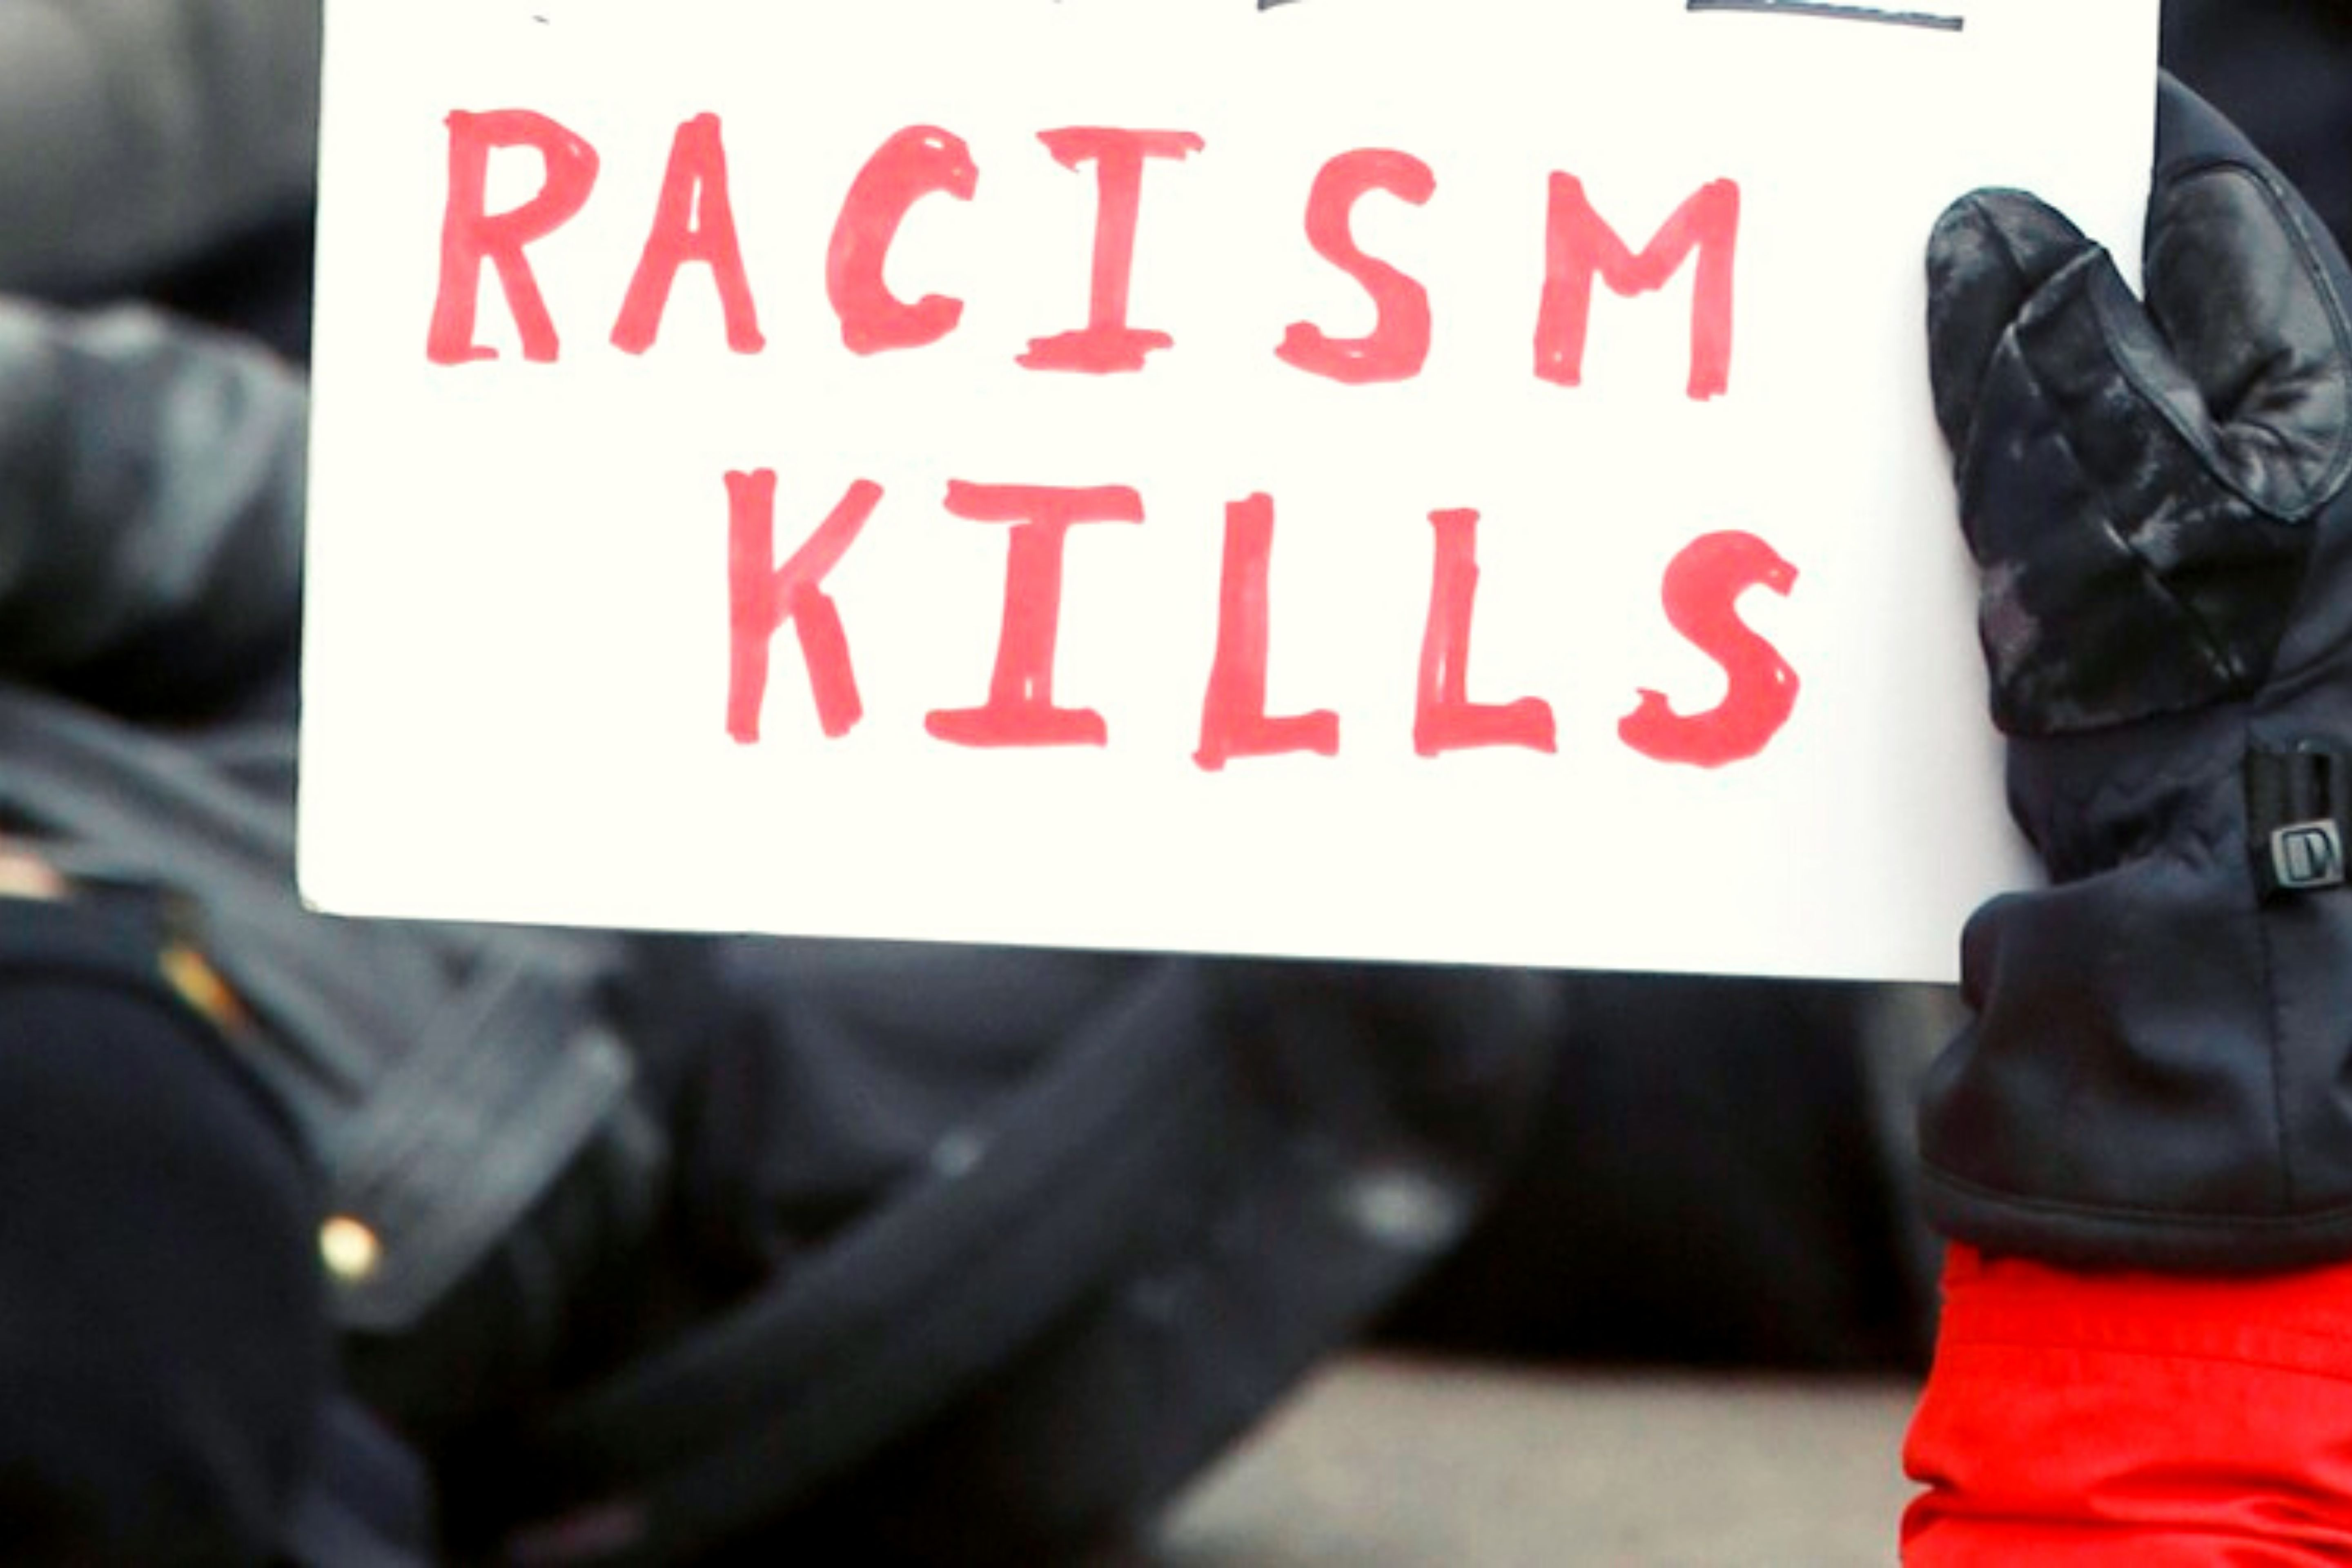 Anti-Racism Vaccine to be tested on Europeans?